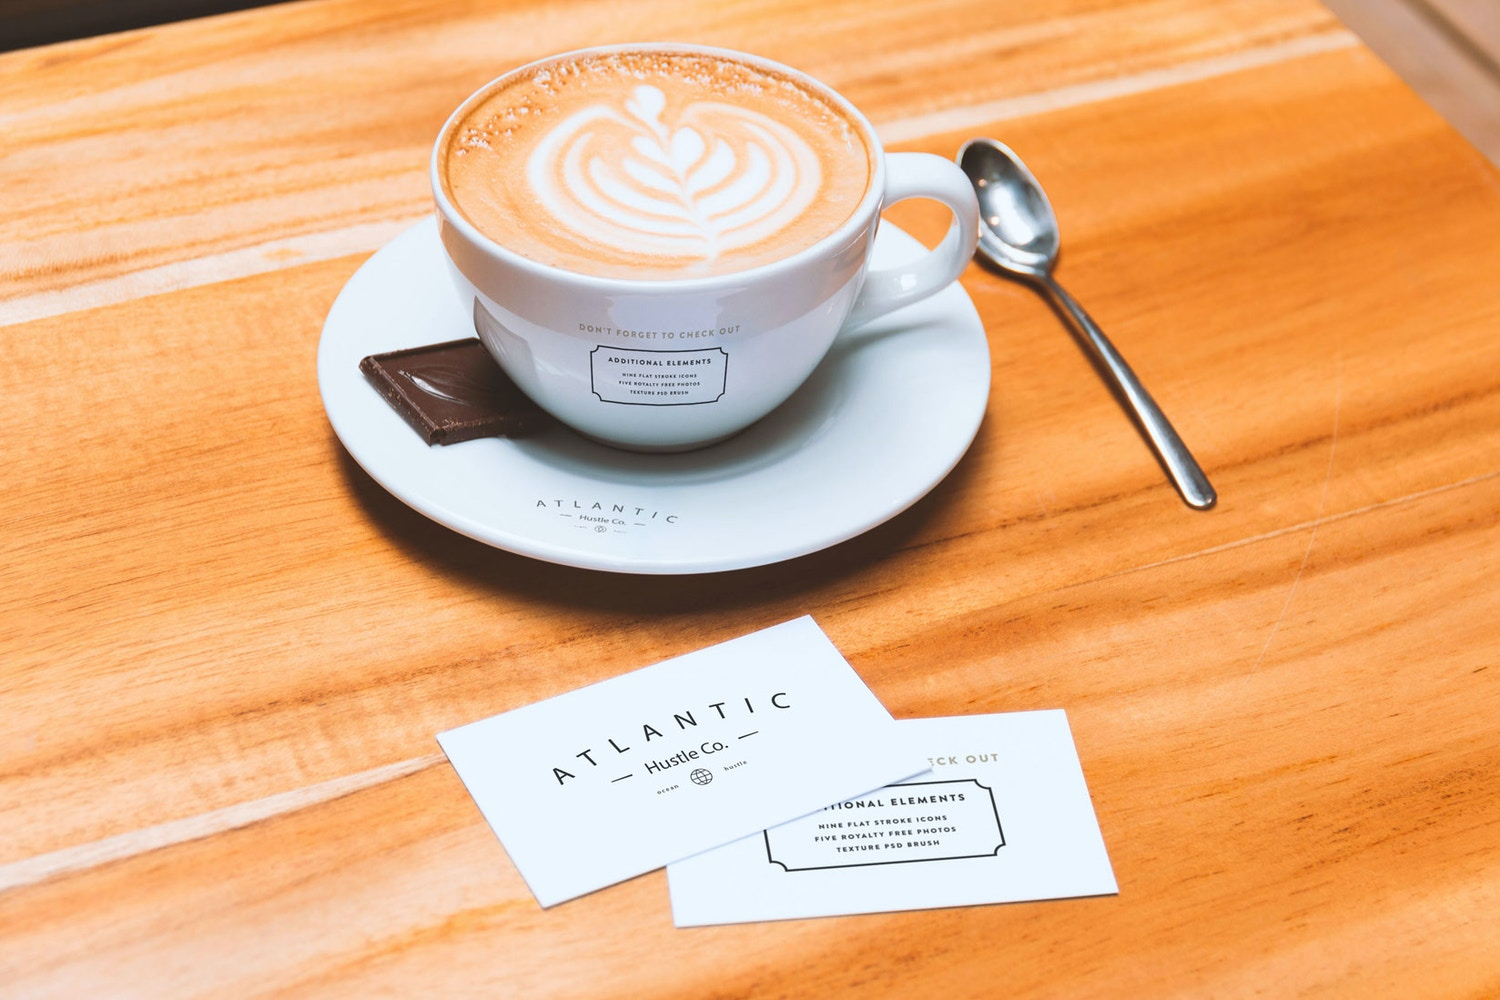 Business Cards and Coffee Cup Mockup por Original Mockups en Original Mockups